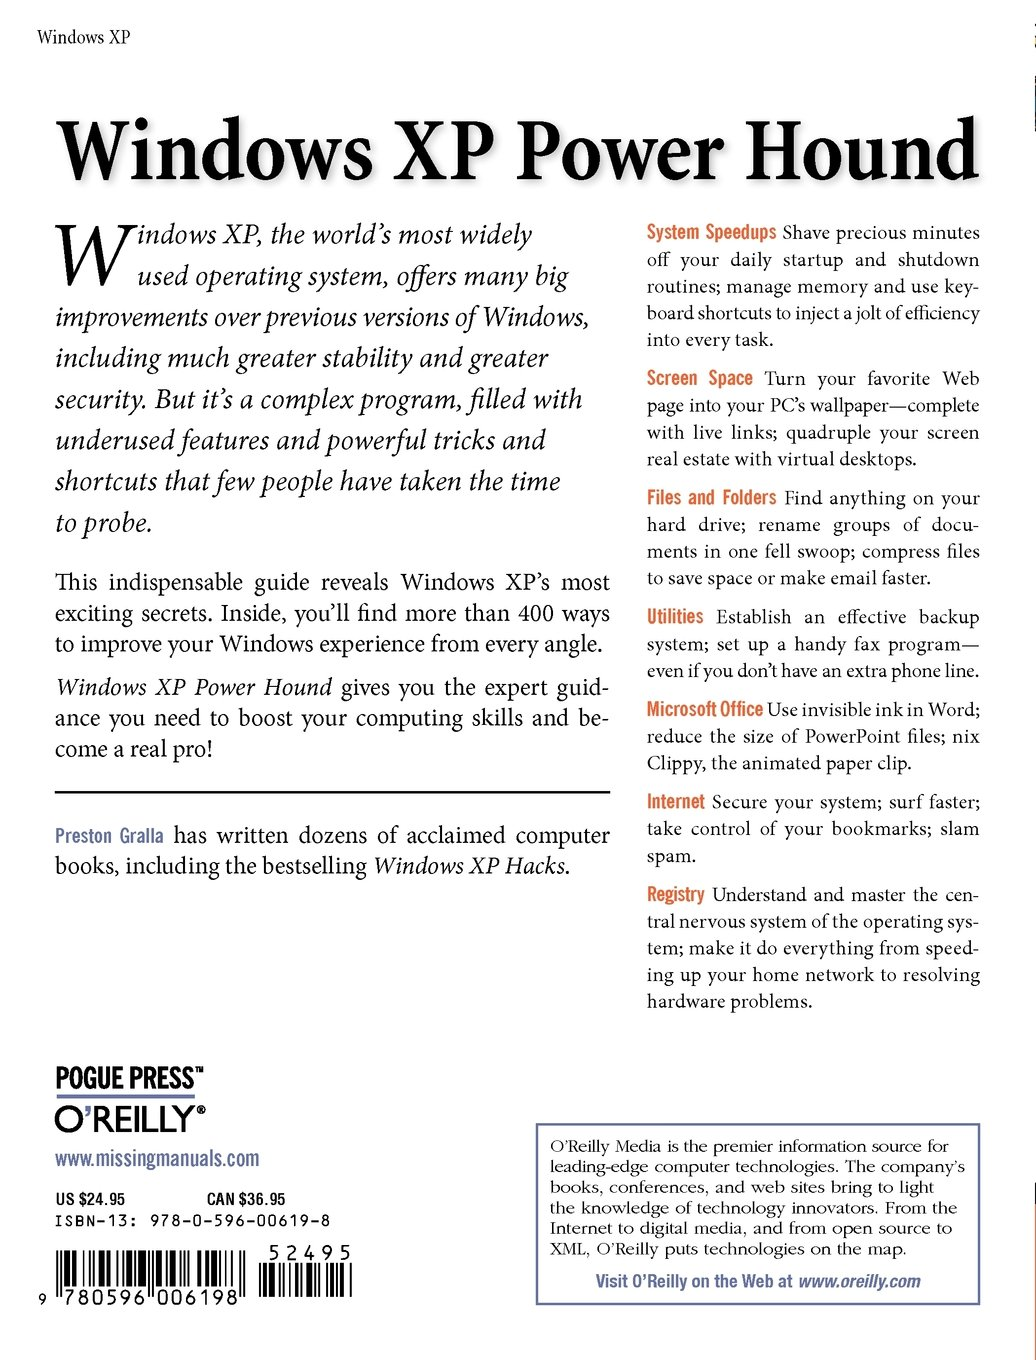 Books on Windows XP: a selection of sites